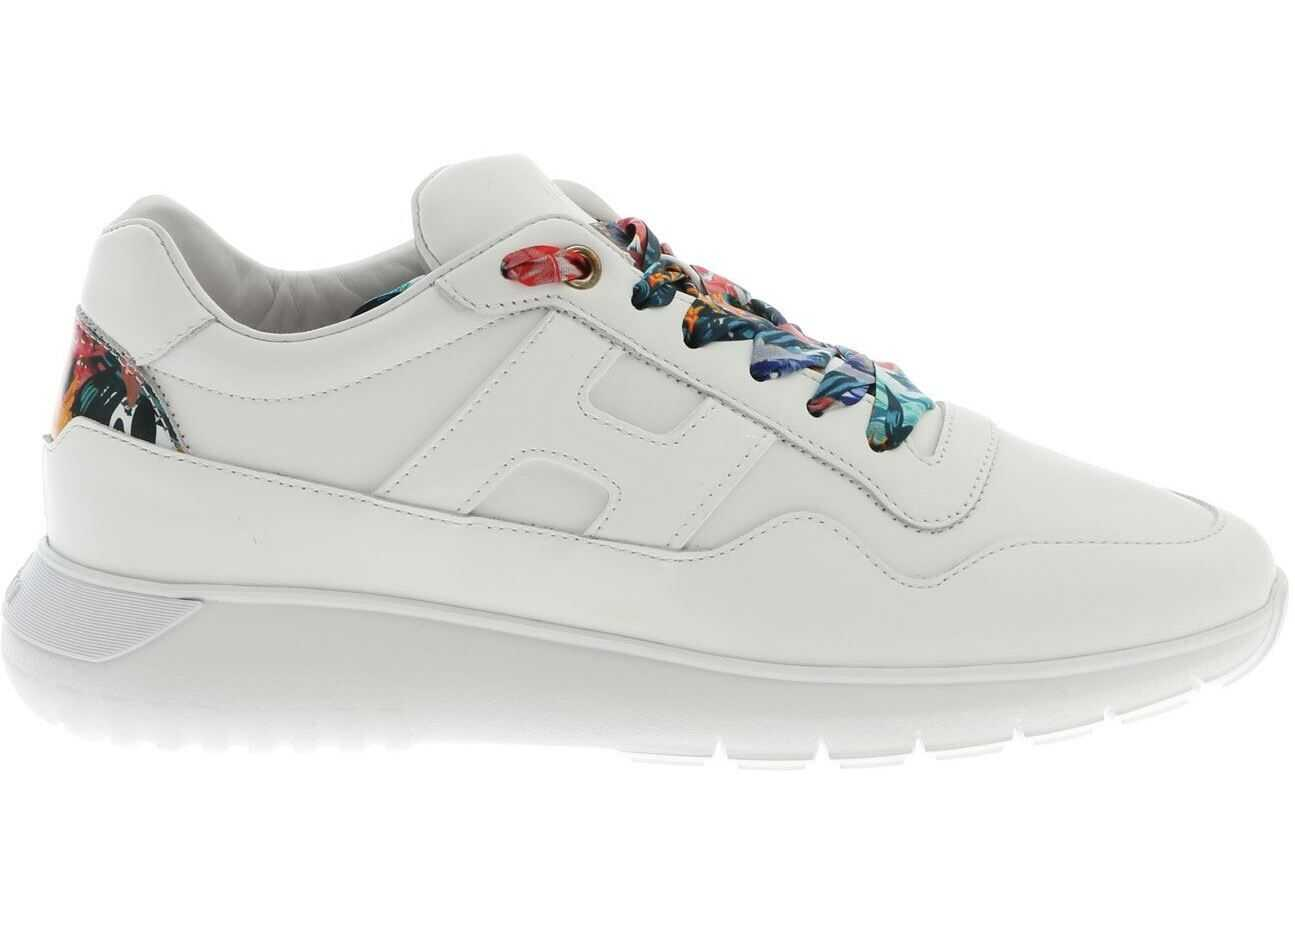 Hogan H371 Sneakers In White With Floral Details White